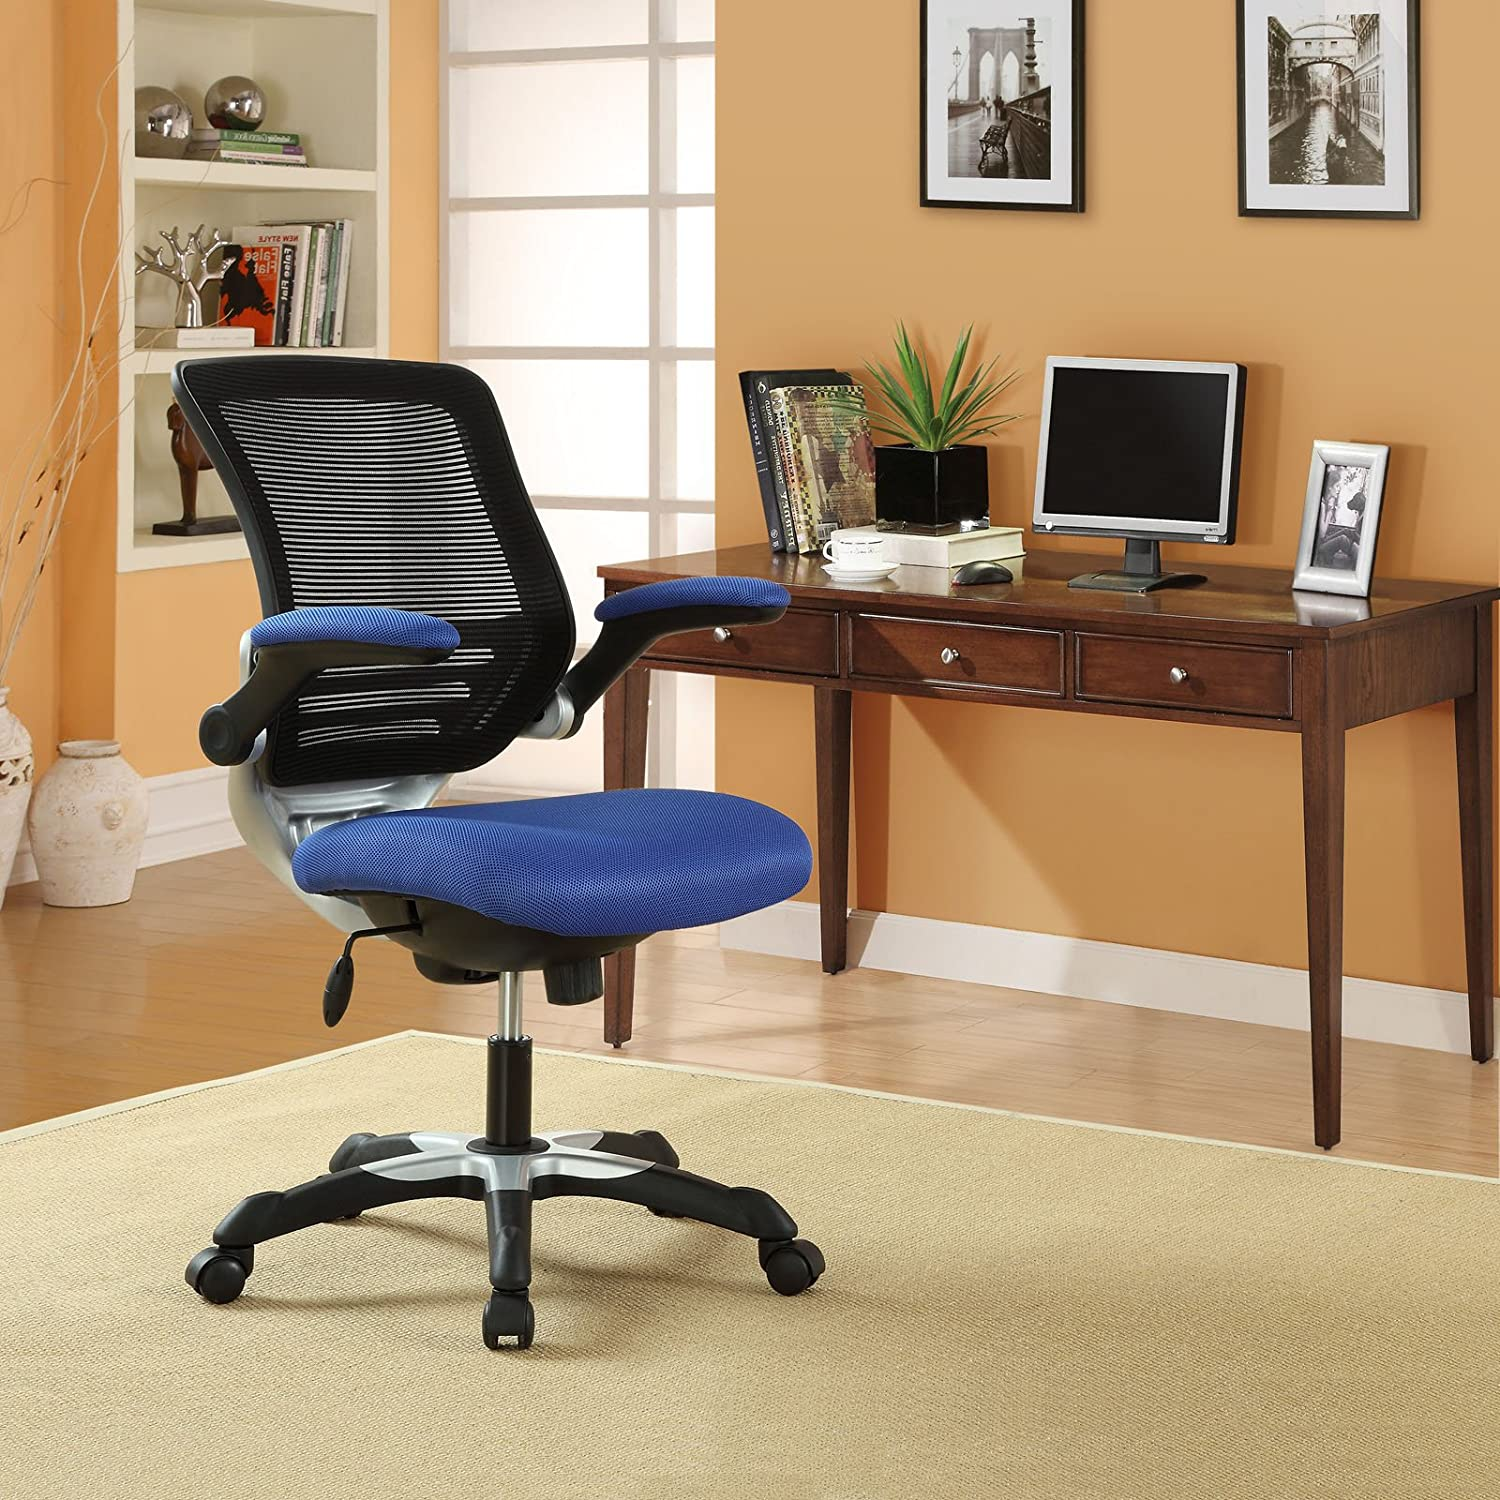 Modway Edge Mesh Back and Blue Mesh Seat Office Chair With Flip-Up Arms - Ergonomic Desk And Computer Chair